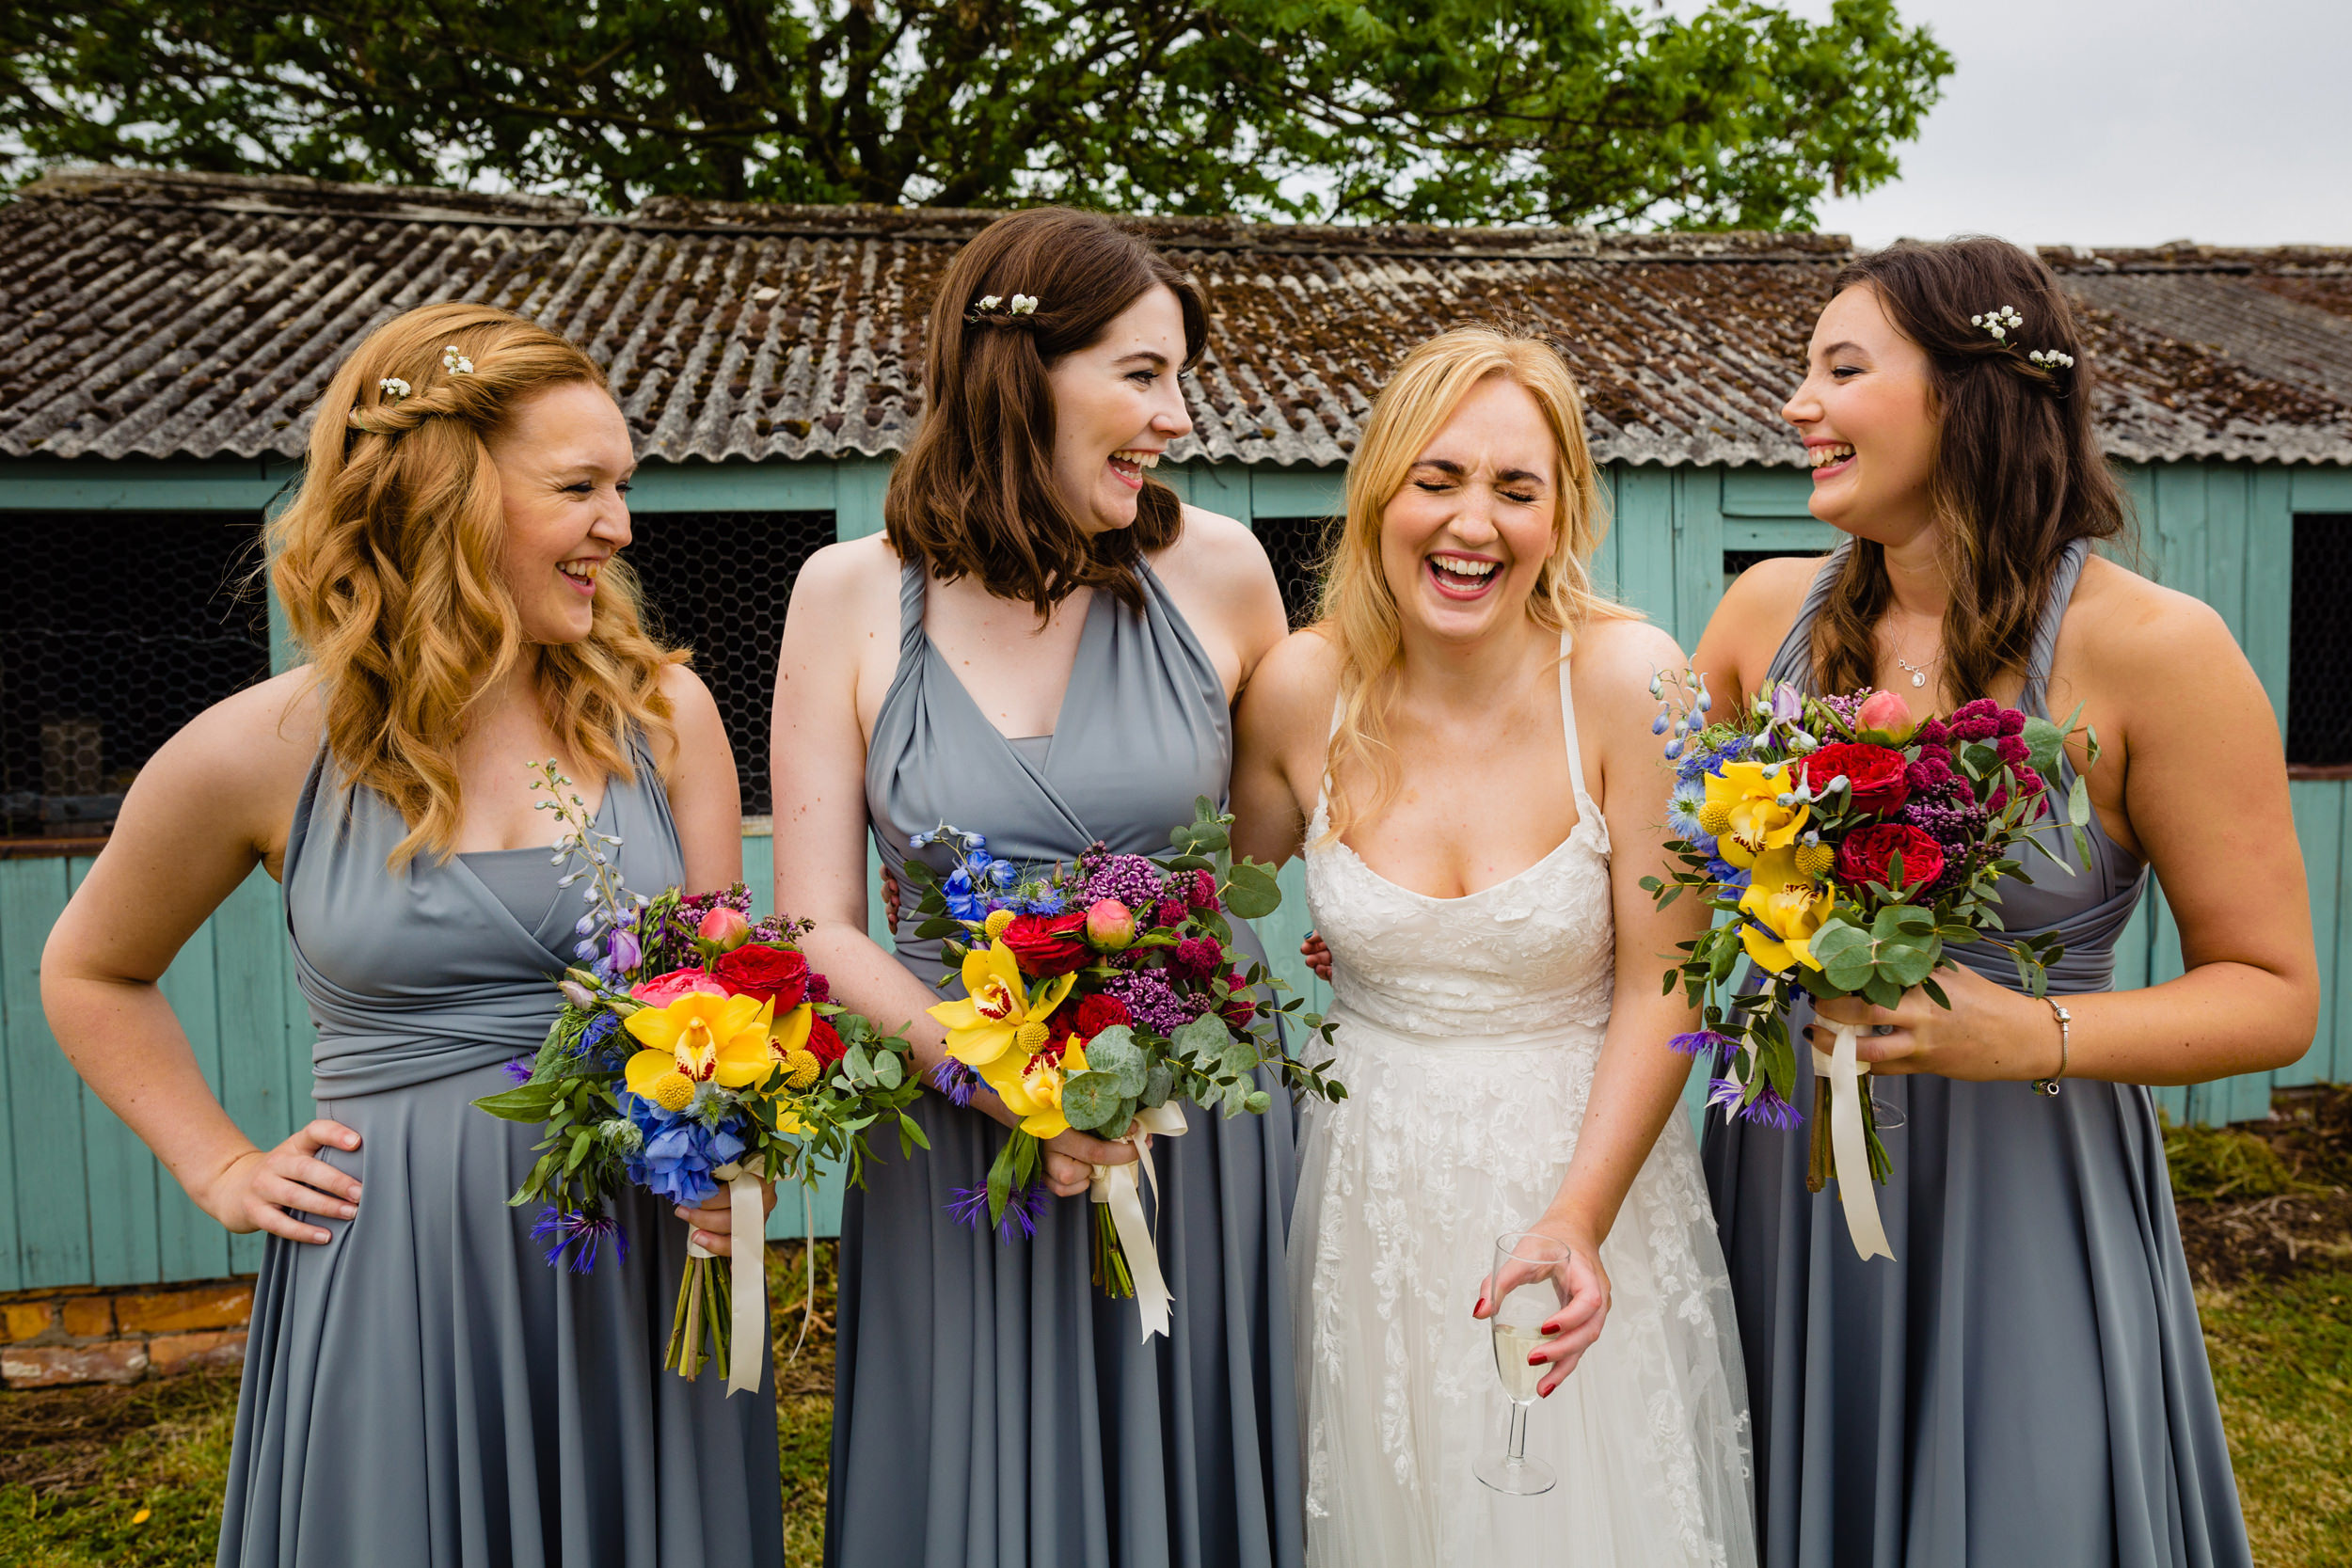 bride and bridesmaids. wildwood and eden wedding photography by emma and rich.